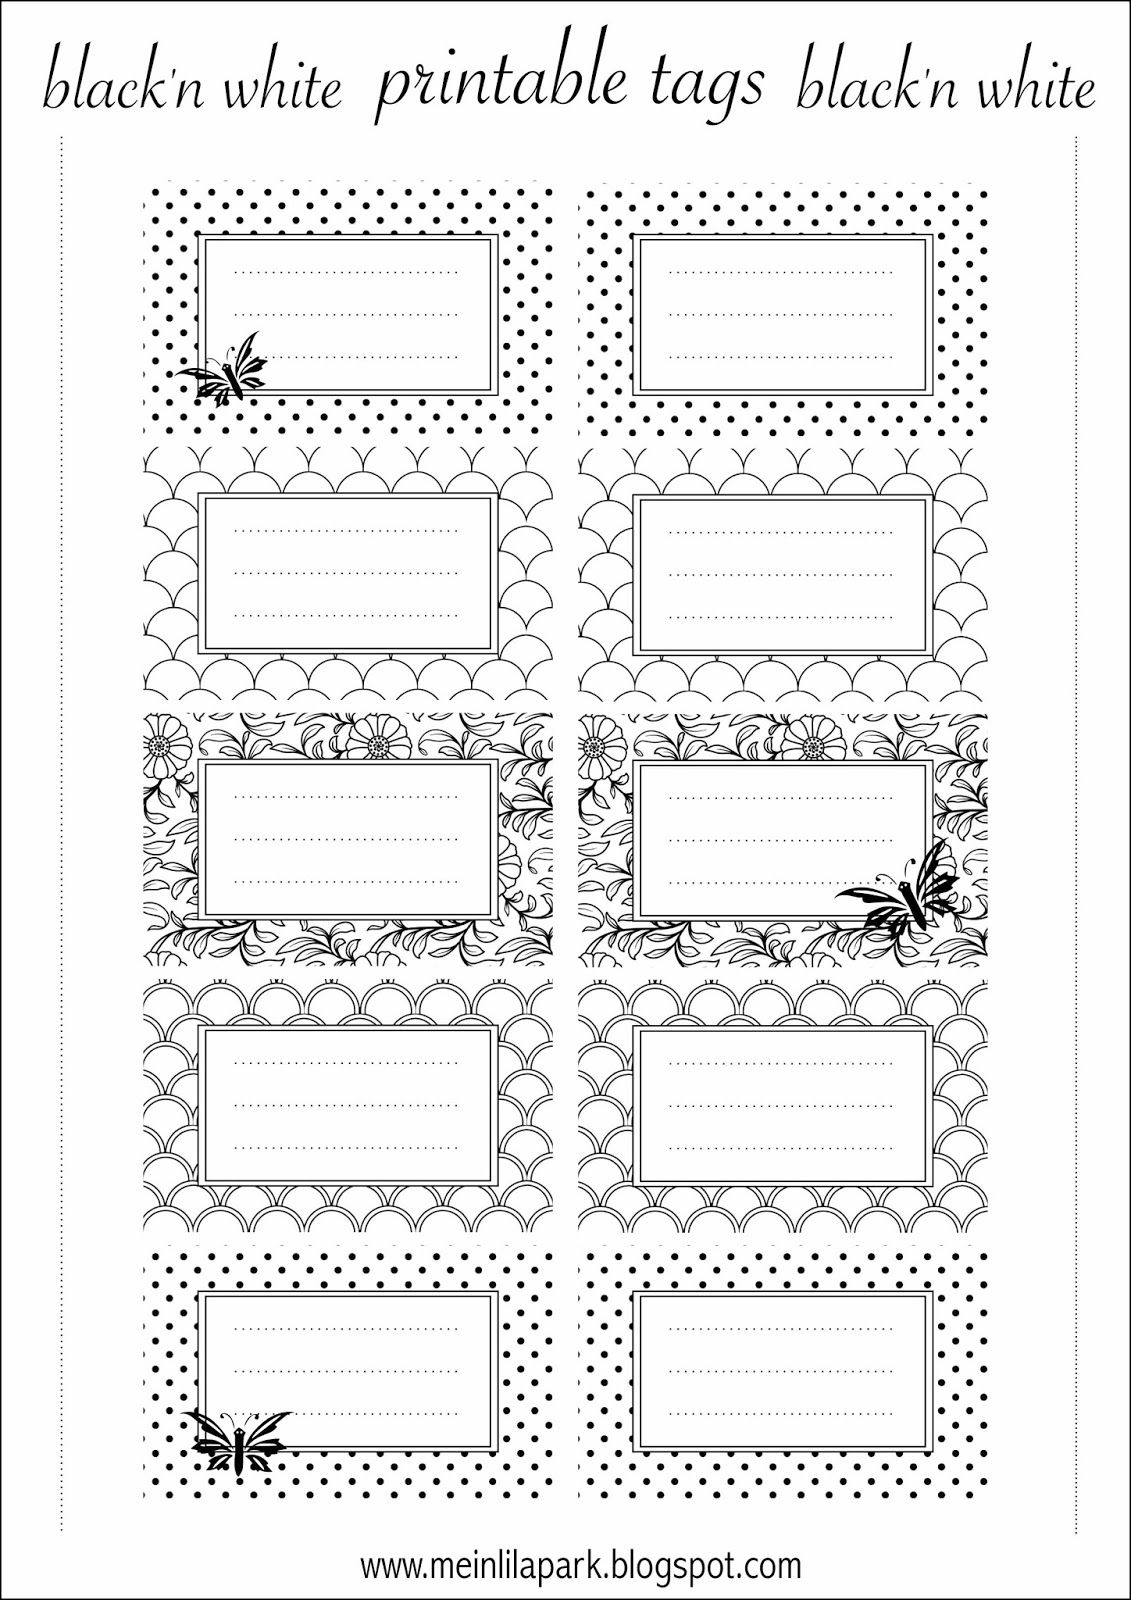 Free printable tags black and white - ausdruckbare Etiketten ...